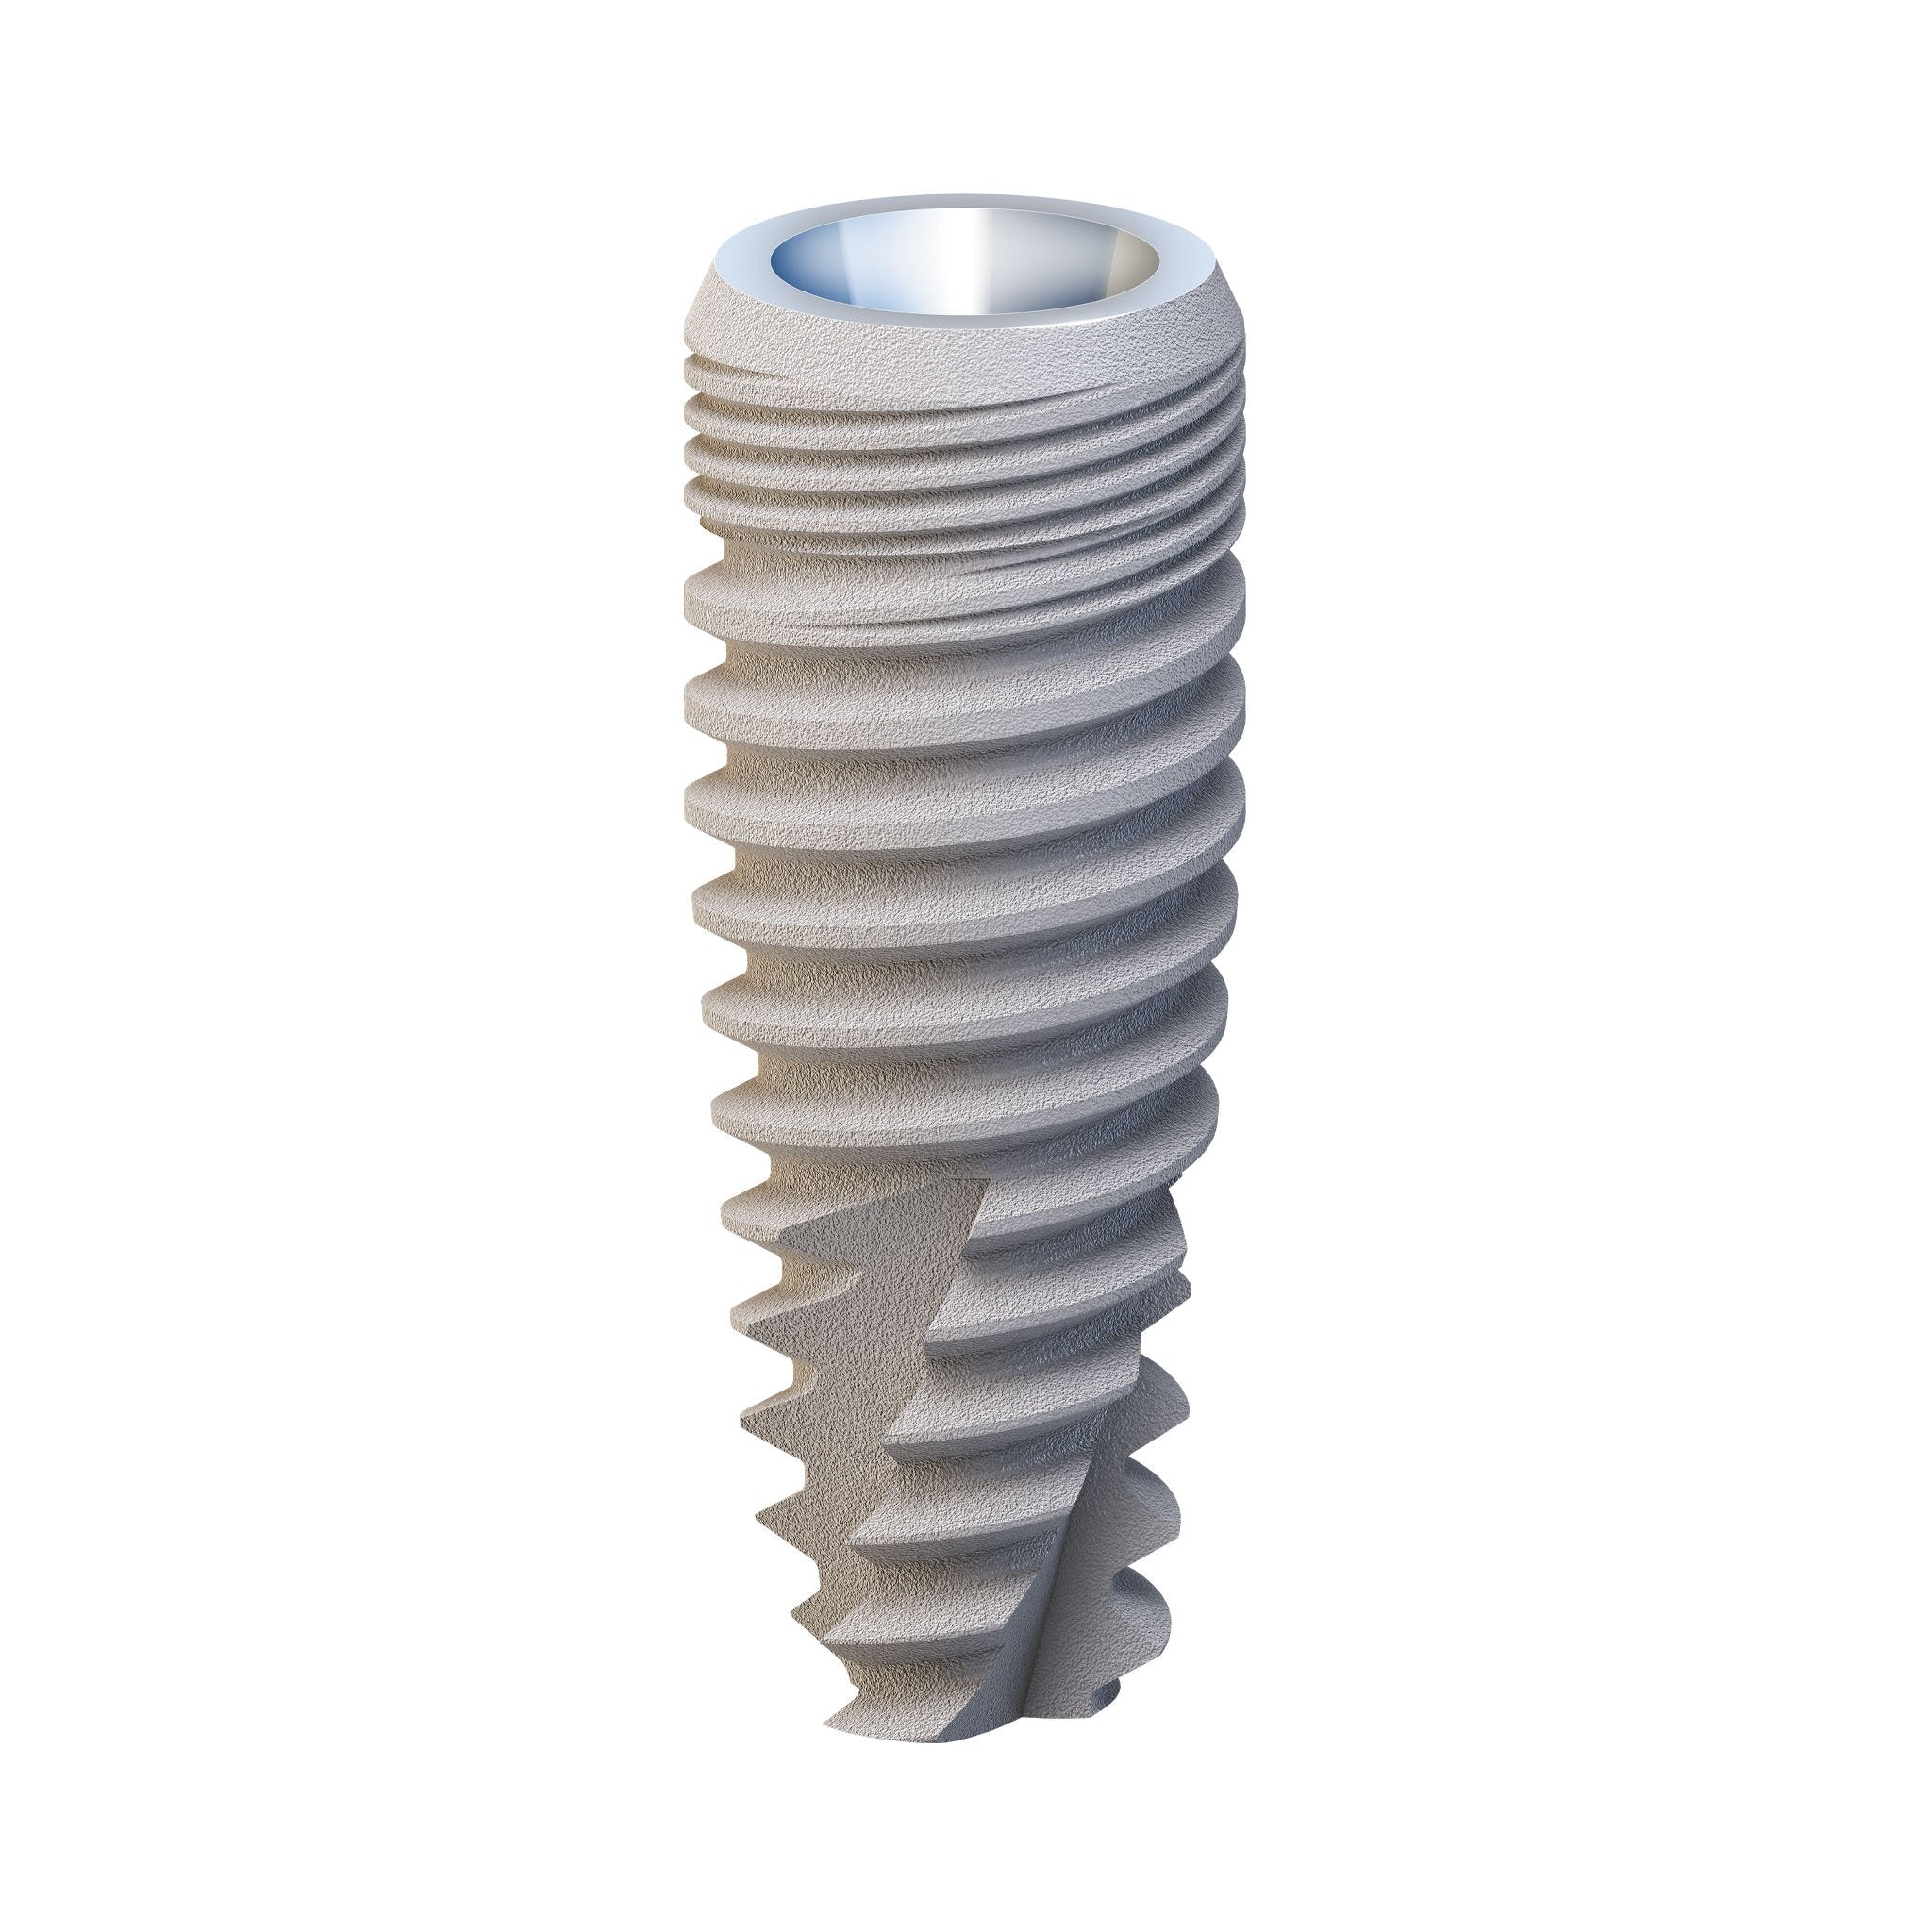 Conical Active Implant Ø 3.75 x 13mm | K3